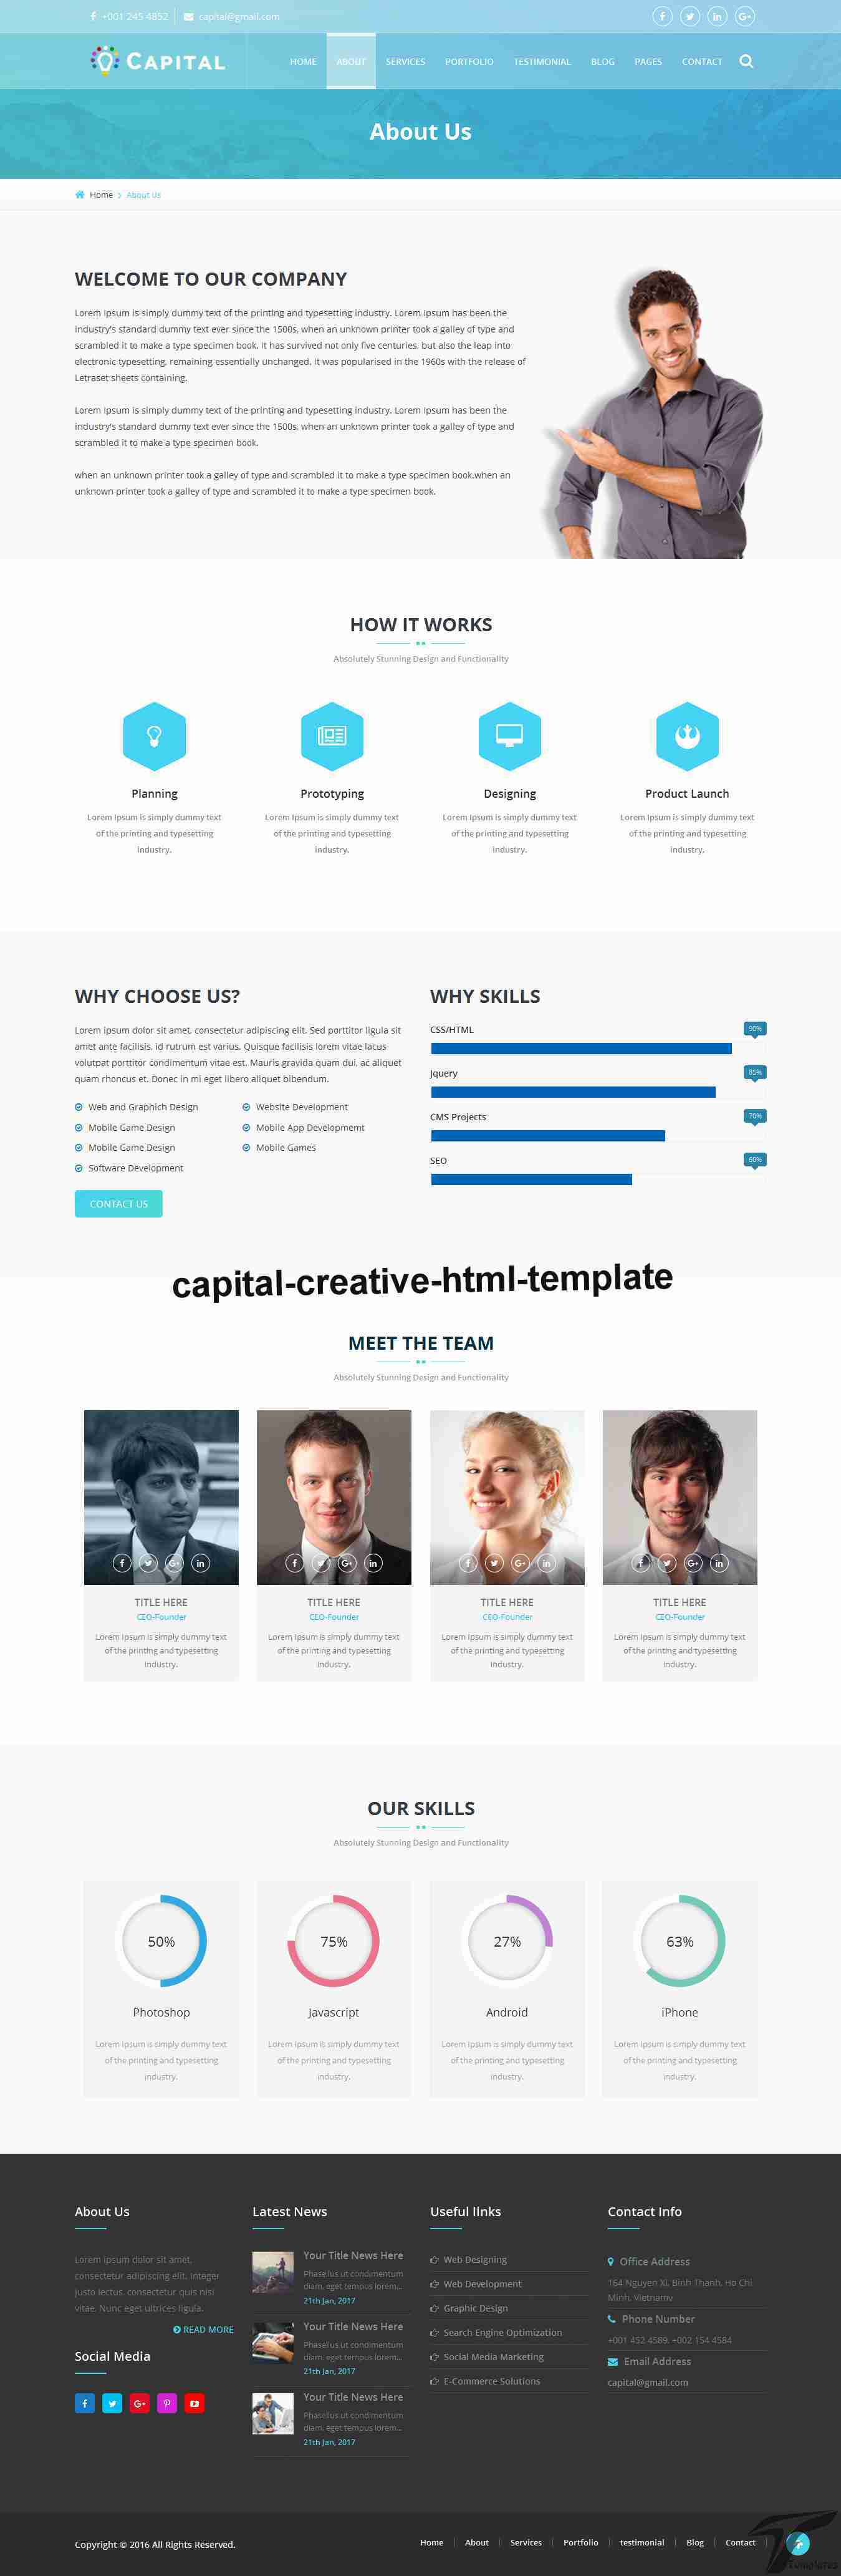 https://images.besthemes.com/images/h1_capital-creative-html-template4-_-205260579/Theme-s20s-Preview/02_About-Page.png